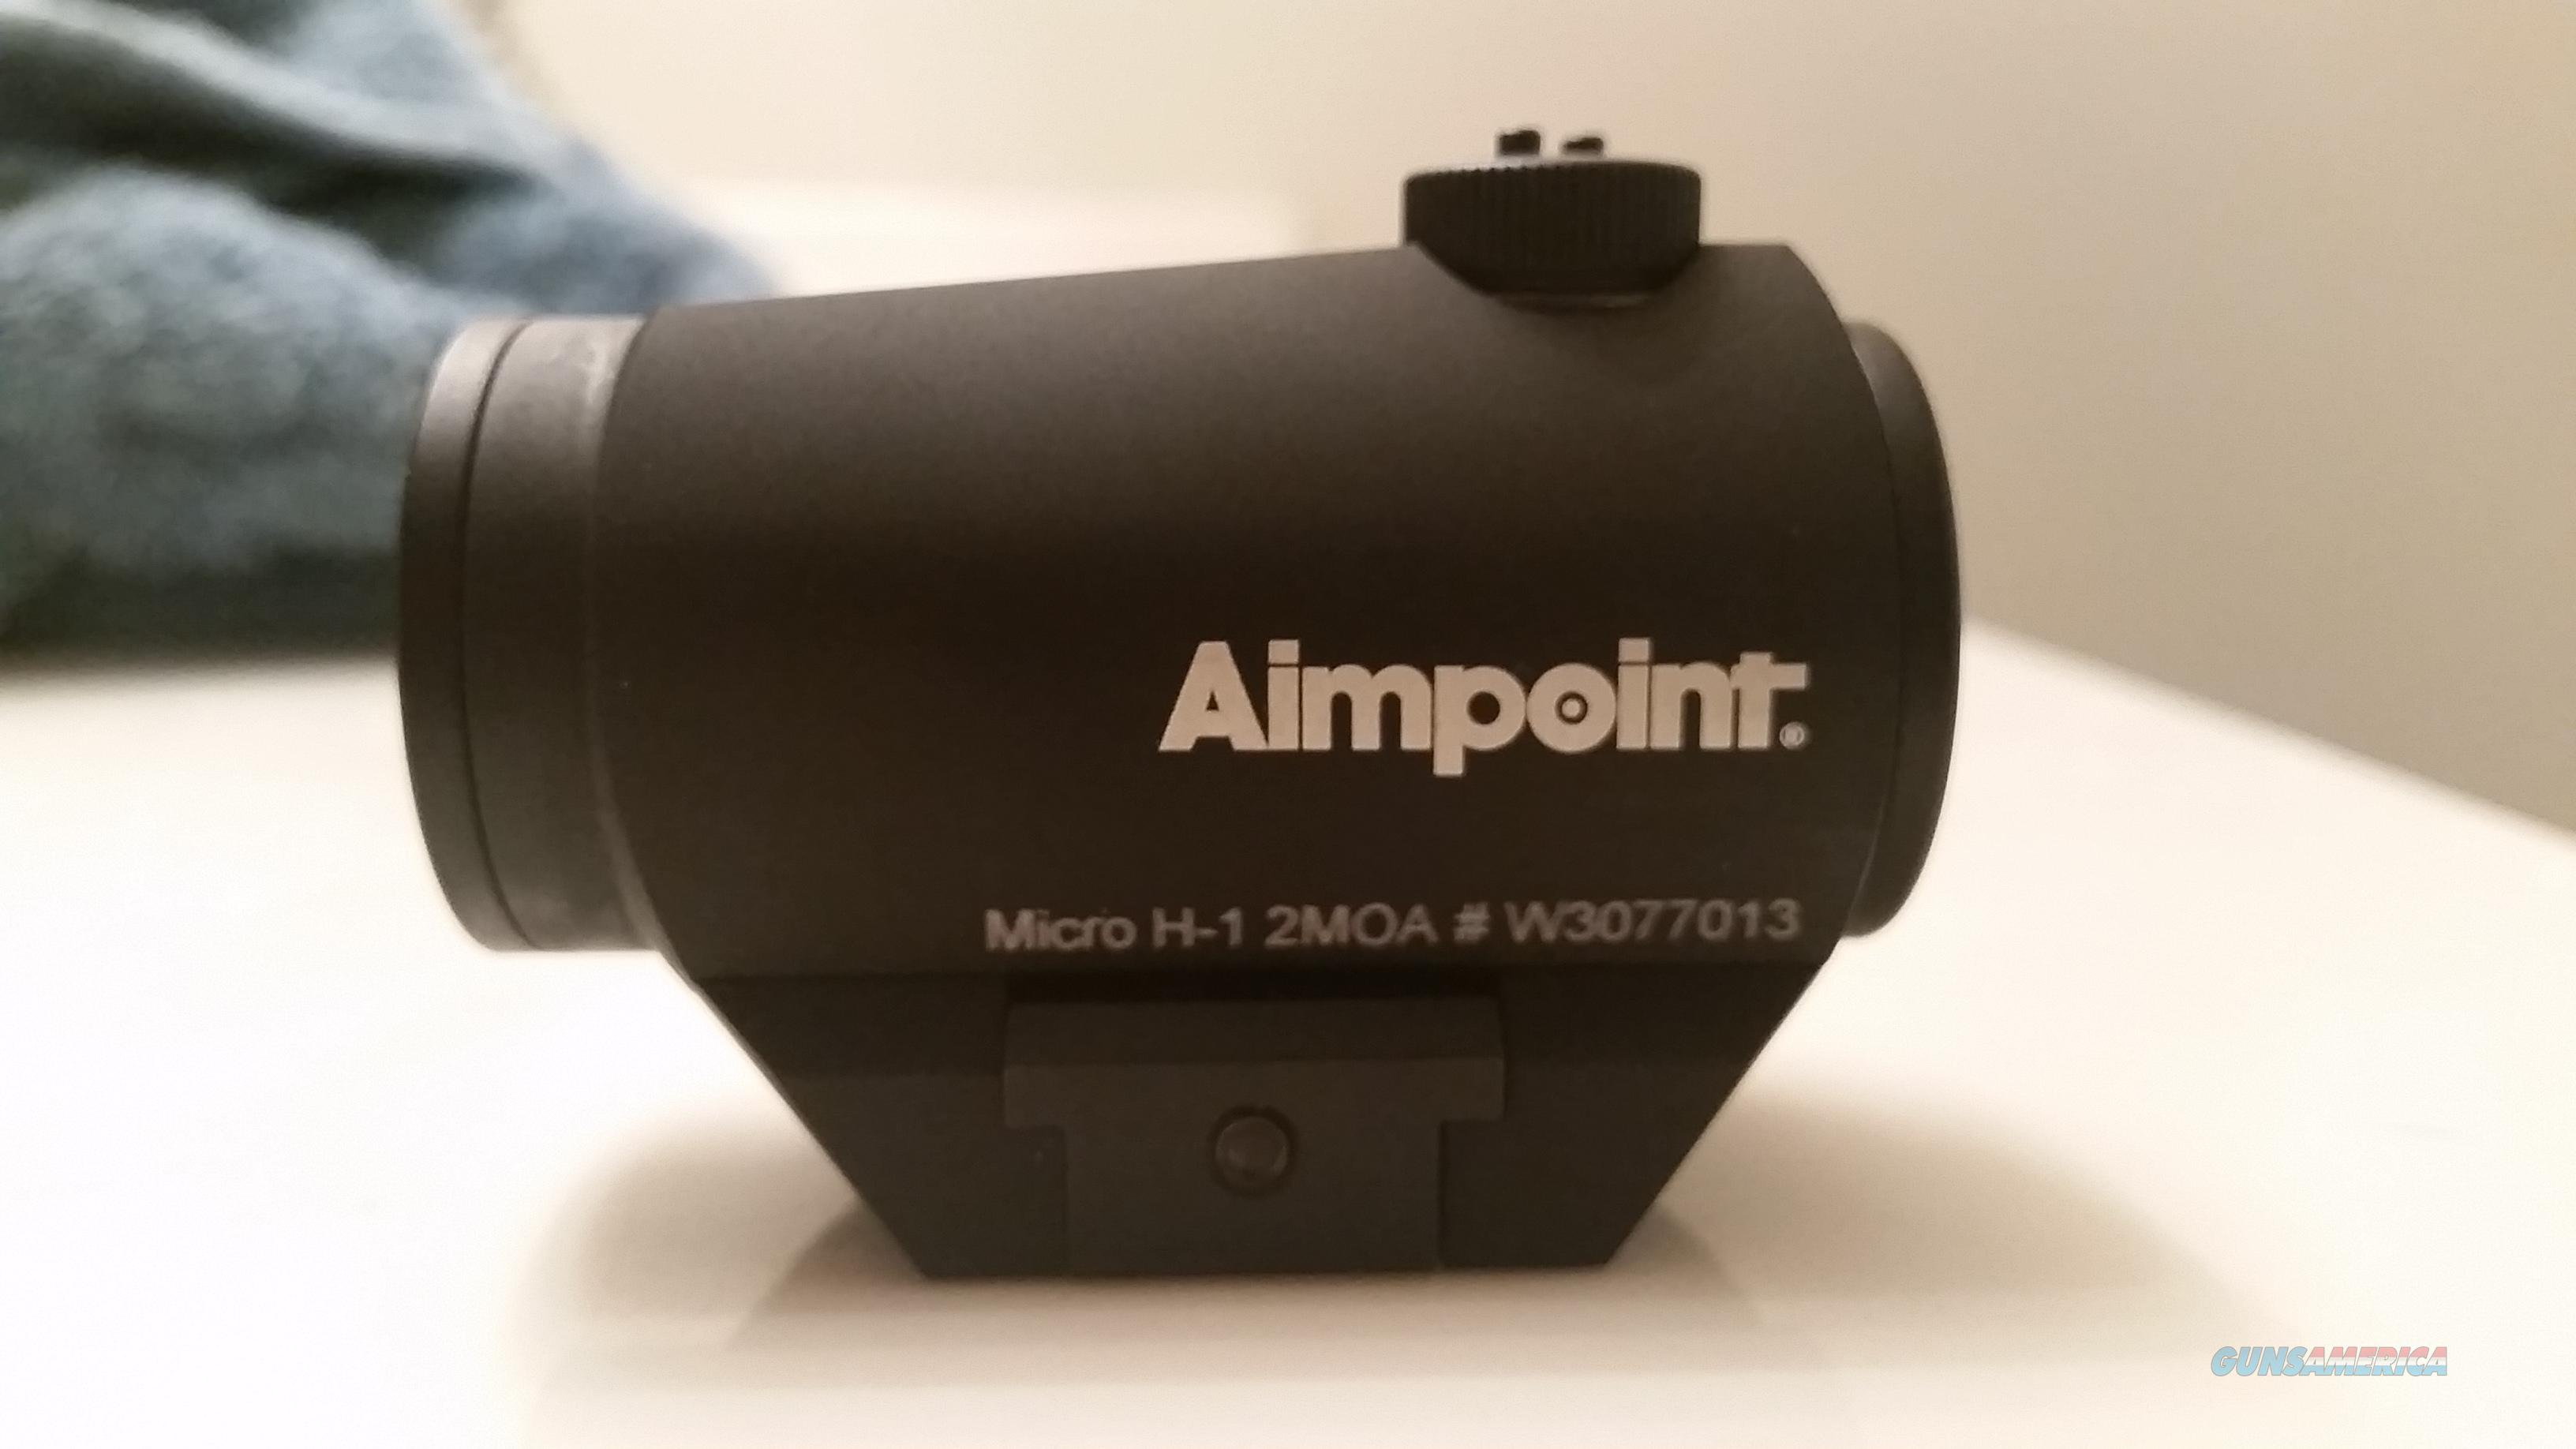 Aimpoint Micro H-1 2 MOA Red Dot Sight  Non-Guns > Scopes/Mounts/Rings & Optics > Tactical Scopes > Red Dot